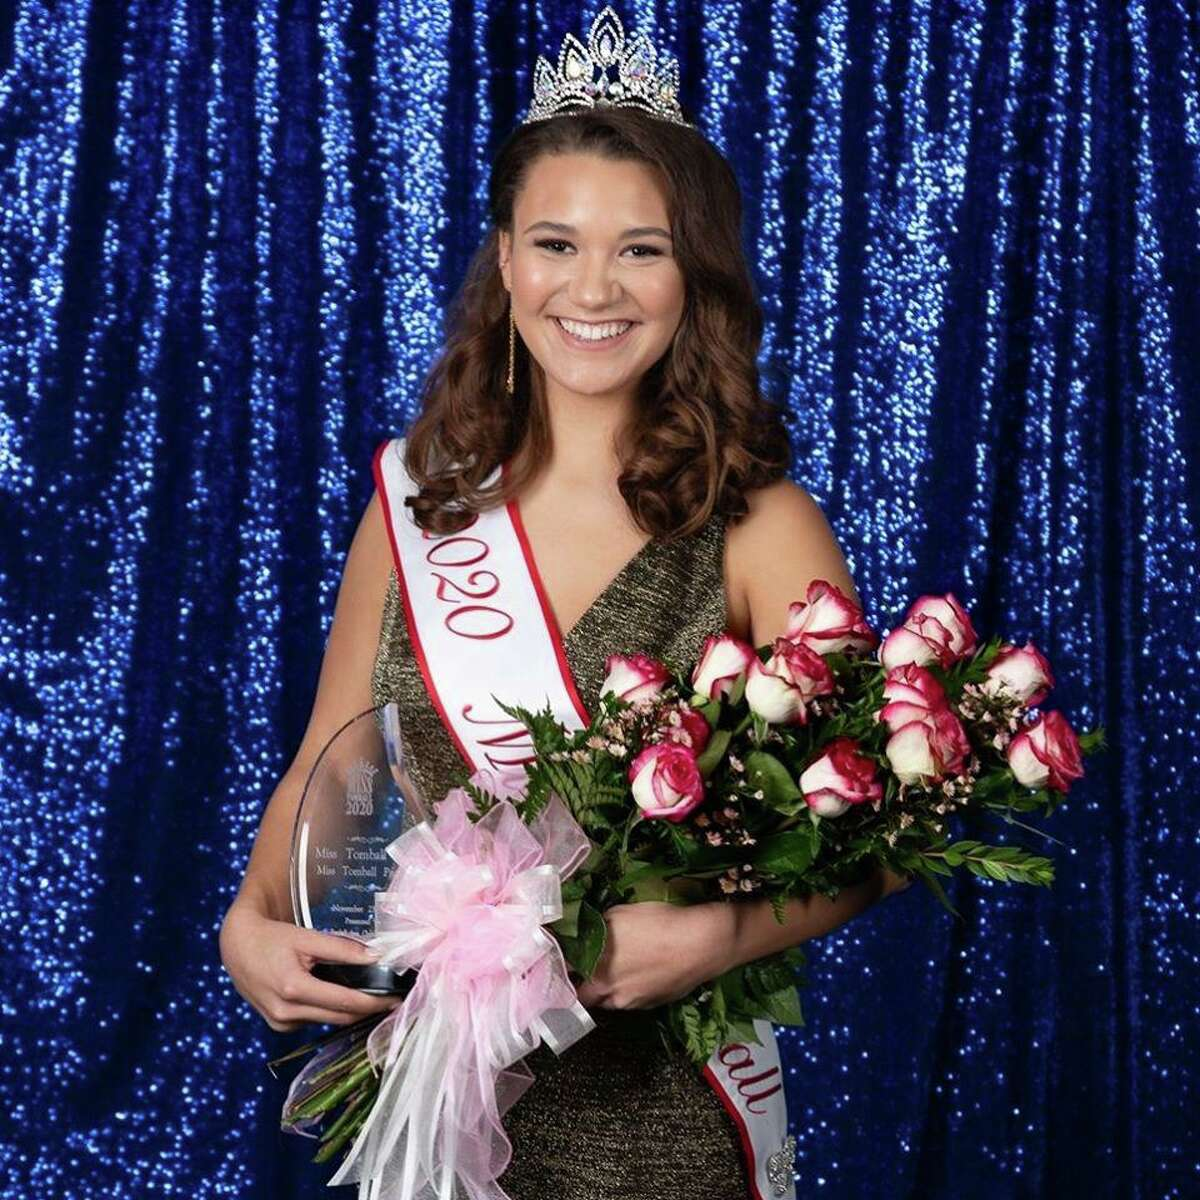 Palmer Jones, Miss Tomball 2020. Jones is a Tomball Memorial High School student who was named Miss Tomball 2020, her second year competing in the pageant.